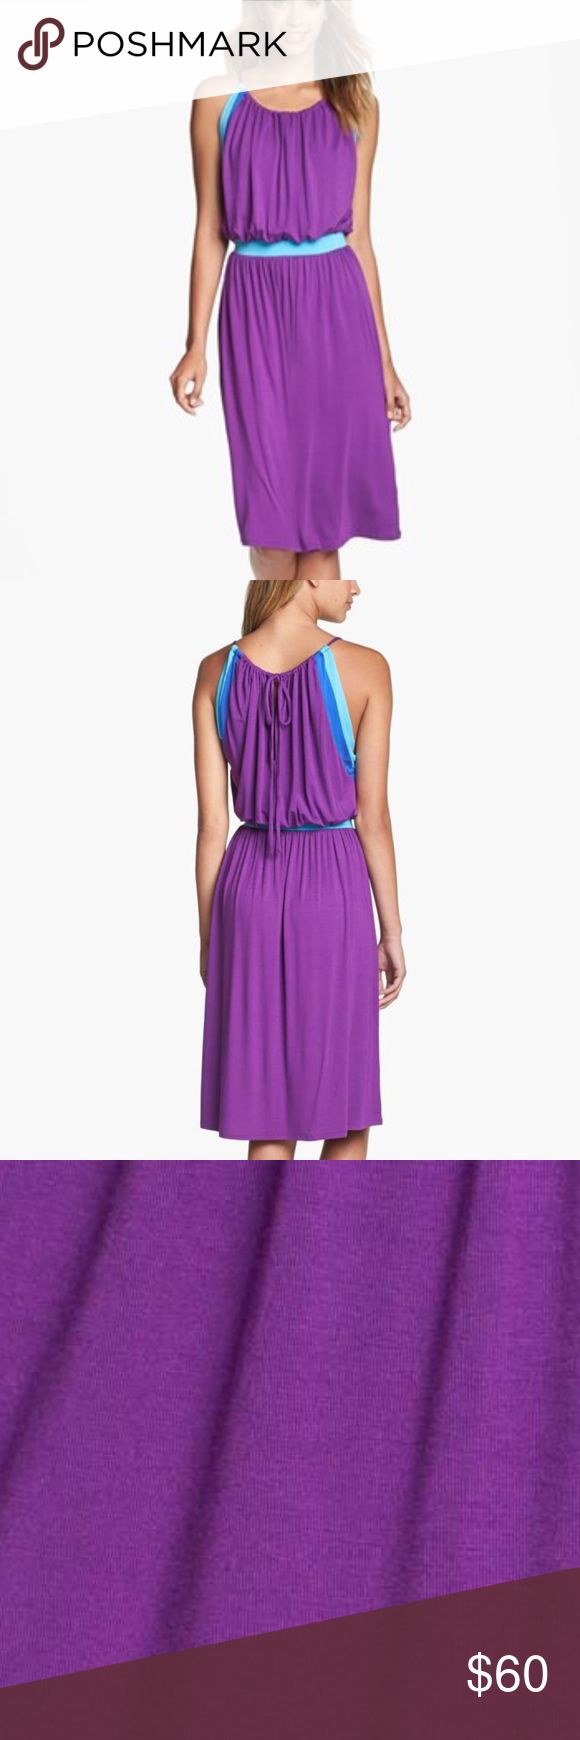 """NWT Felicity. & Coco Blouson Jersey Dress XSP NWT Felicity. & Coco Blouson Jersey Dress XSP Ocean-tone stripes frame the halter bodice of a breezy jersey dress shaped with a contrast elastic band at the waist and a hem that drapes a little lower in the back. 35"""" petite center front length Slips on over head. Ties at back neck. Unlined. Viscose rayon/spandex; hand wash. Nordstrom Dresses Midi"""